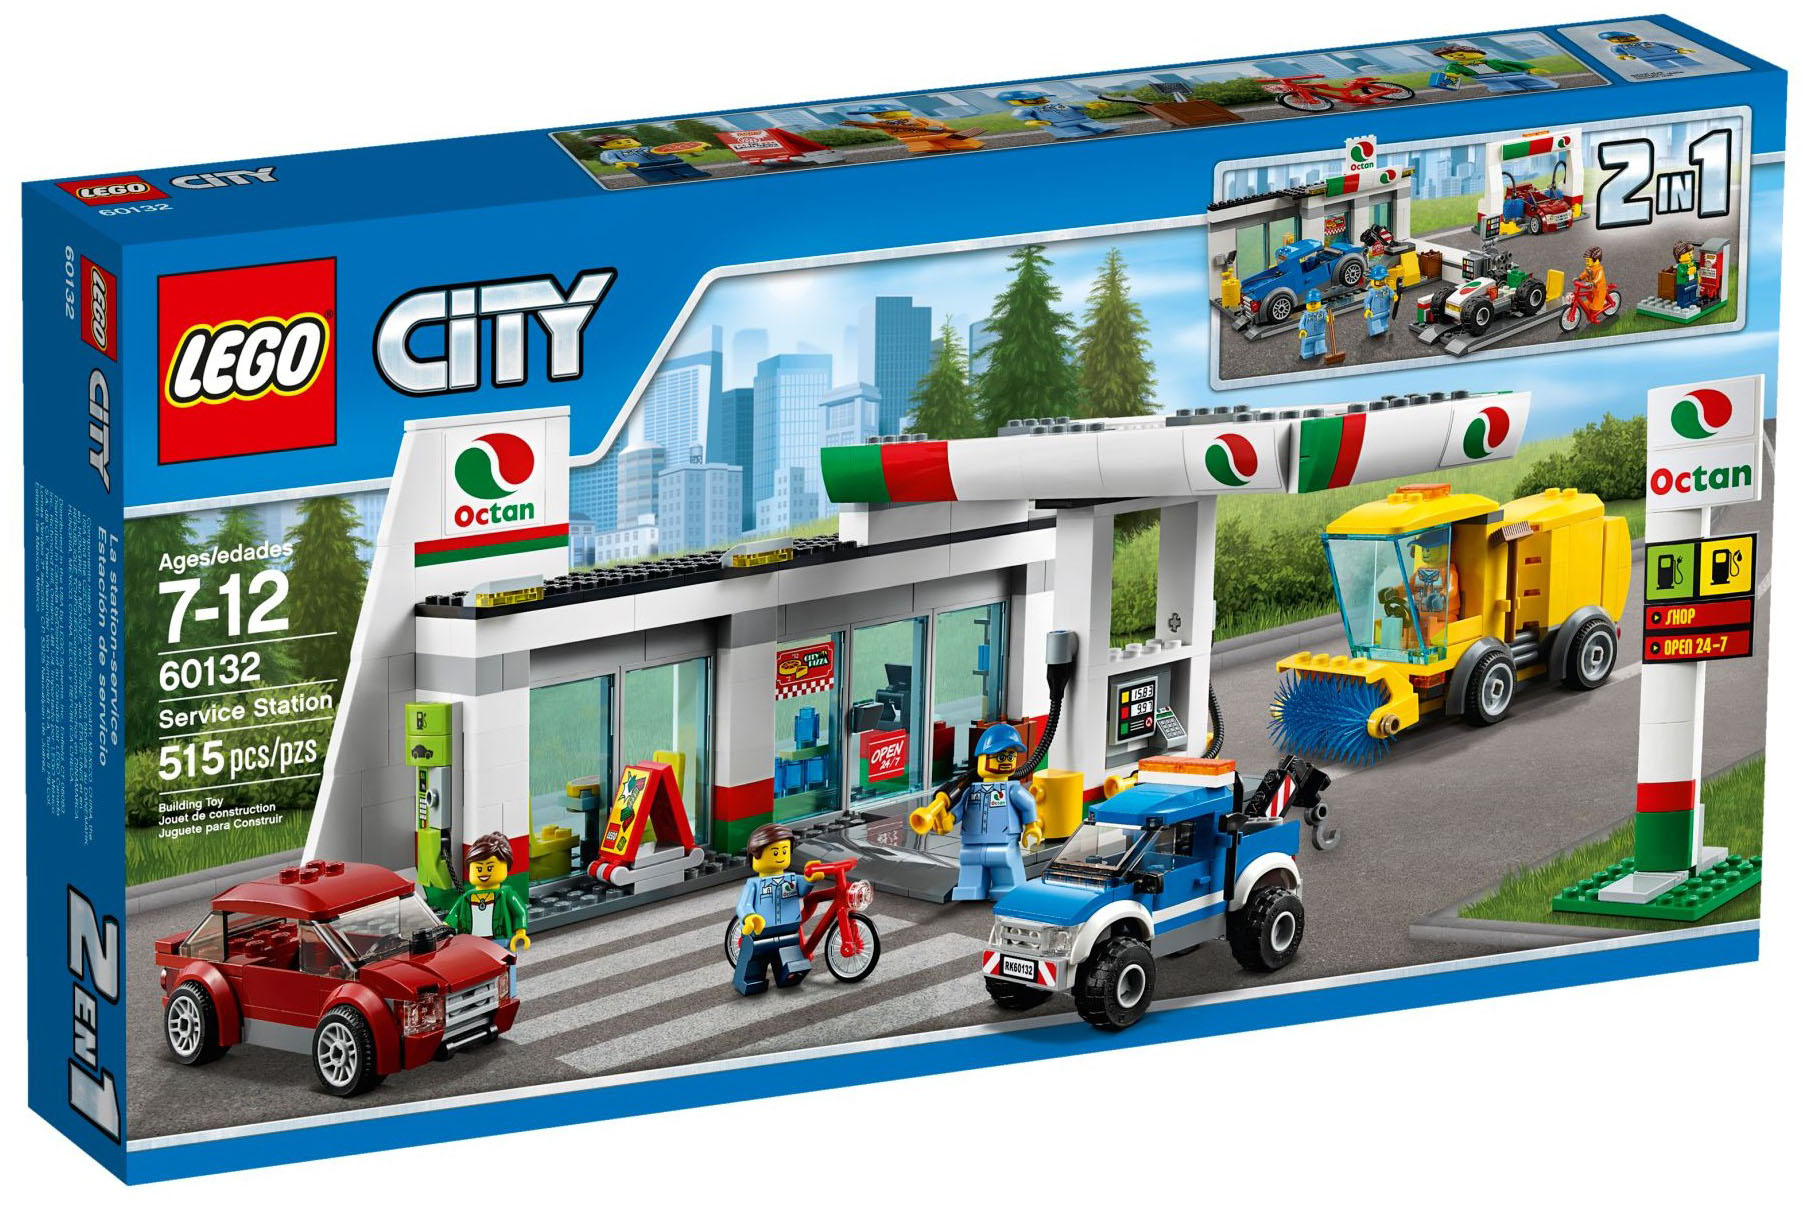 lego city 60132 pas cher la station service. Black Bedroom Furniture Sets. Home Design Ideas